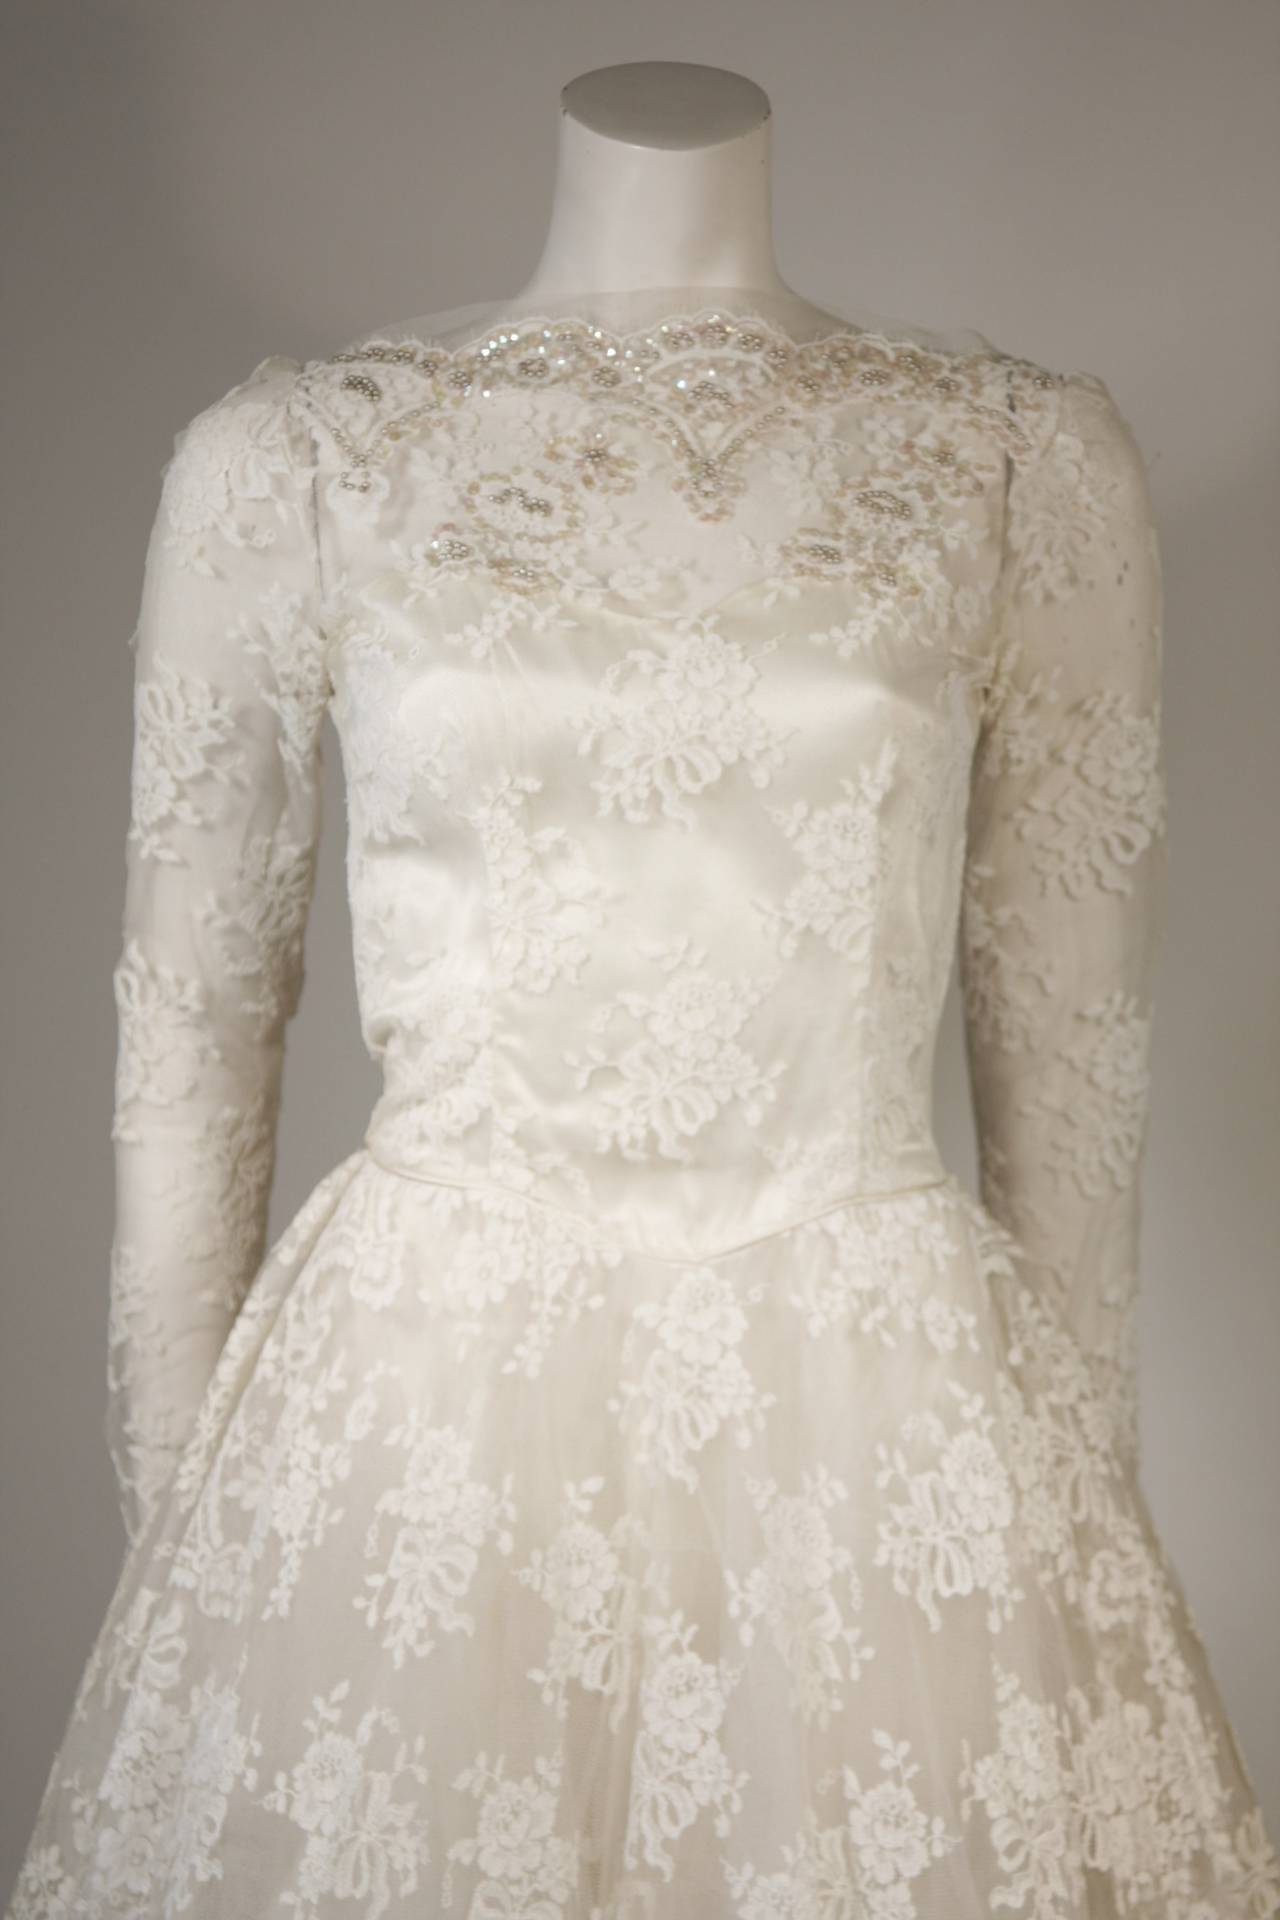 Vintage Lace Wedding Gown with Scalloped Edges and Long Sleeves Size Small 5